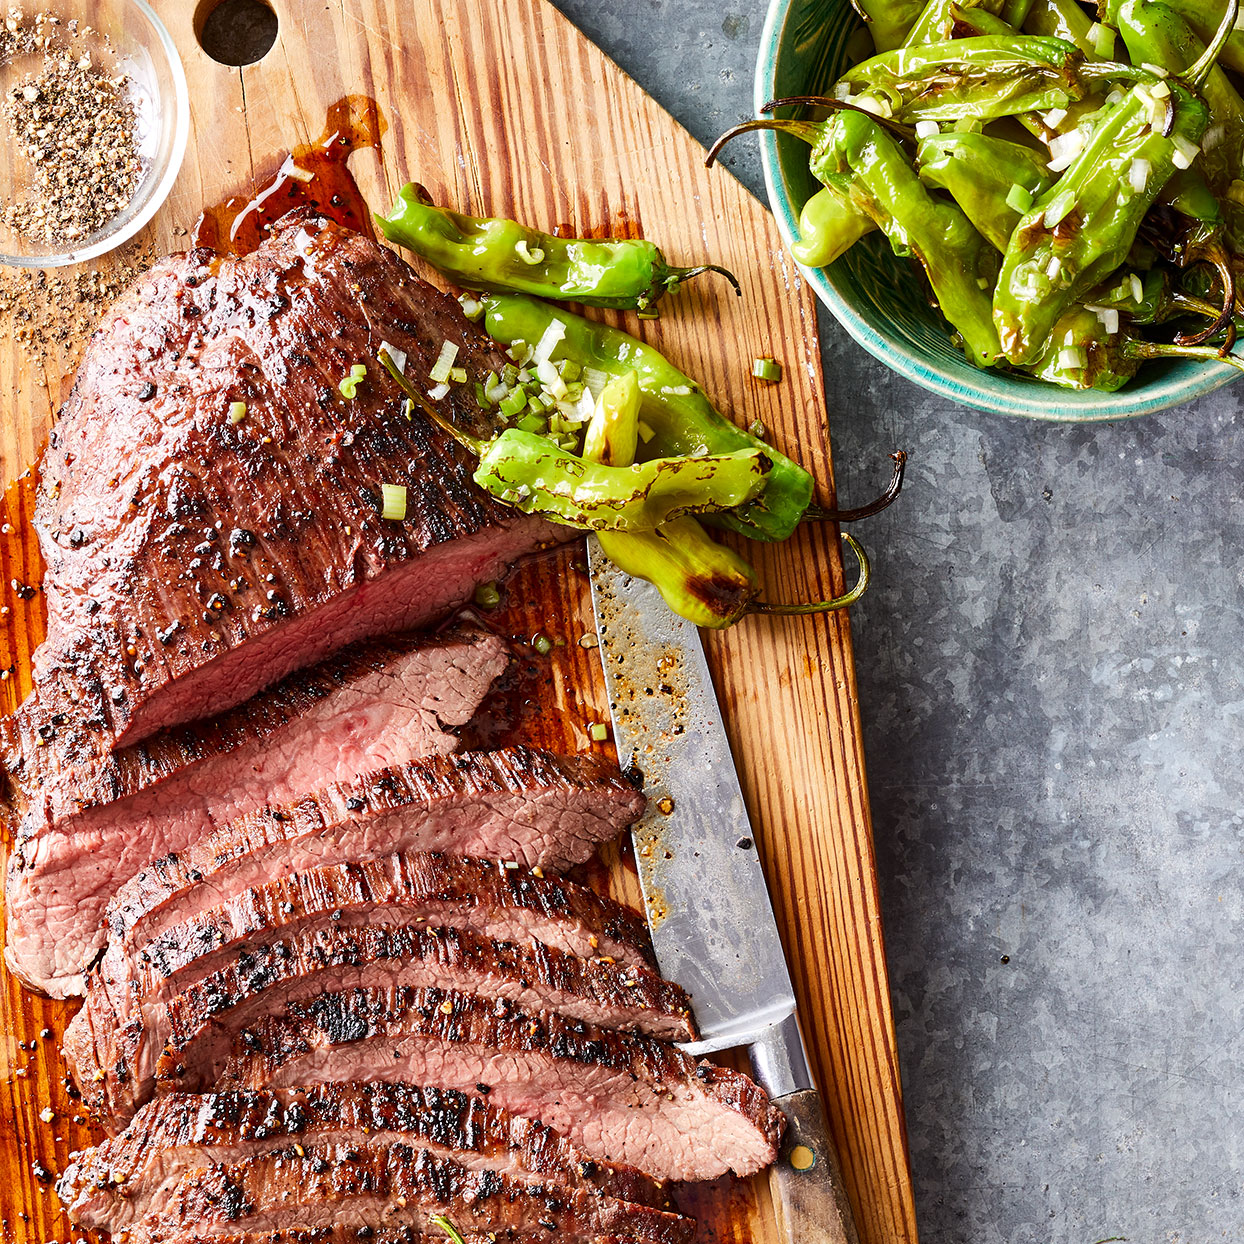 This flank steak recipe comes together easily on a baking sheet, but if you're itching to take it outside, fire up the grill instead. Just be sure to use a grill basket for the peppers so you don't end up chasing them around the grates, or worse, losing them to the fire. Source: EatingWell Magazine, May 2020